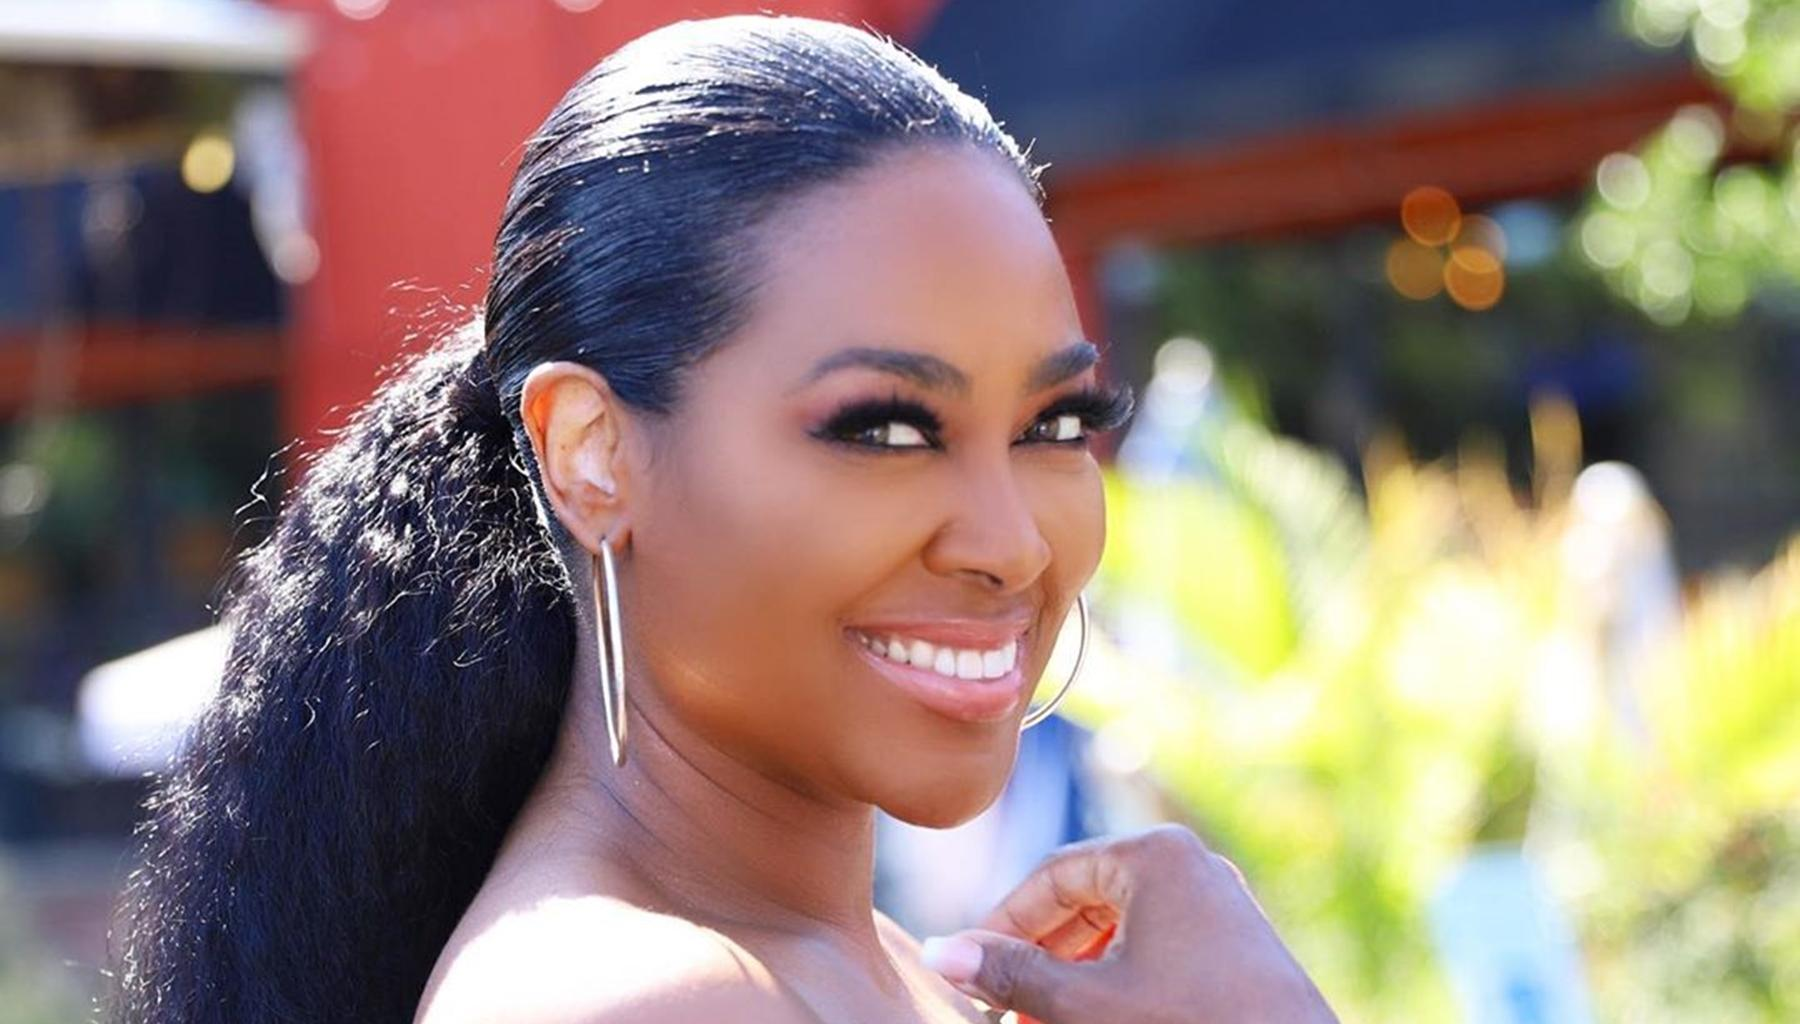 Kenya Moore Says Her And Marc Daly's Baby, Brooklyn Daly Will Be A Musician - See The Video